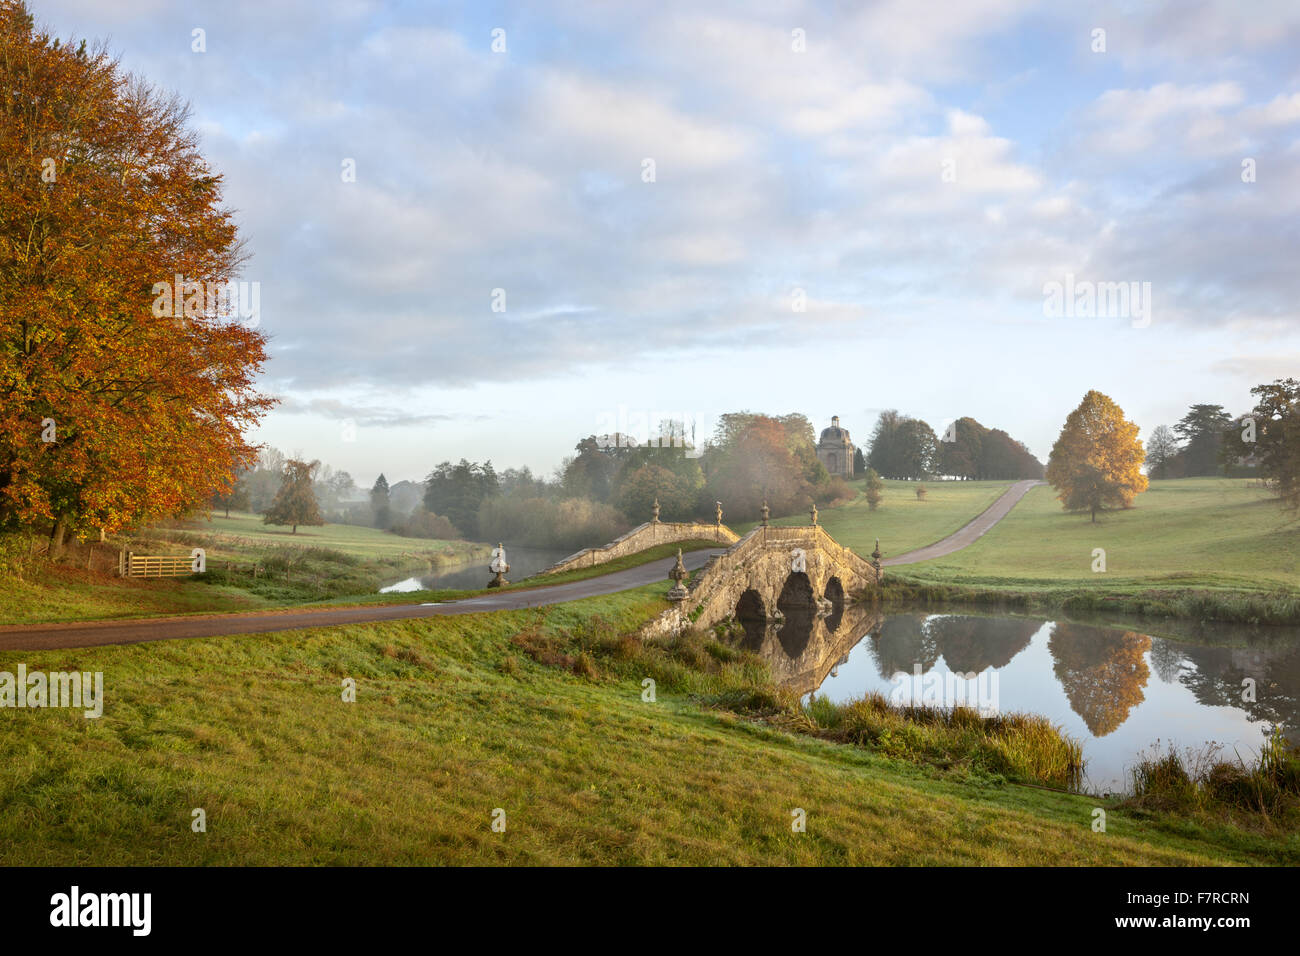 The Oxford Bridge at Stowe, Buckinghamshire. Stowe is an 18th century landscaped garden, and includes more than - Stock Image